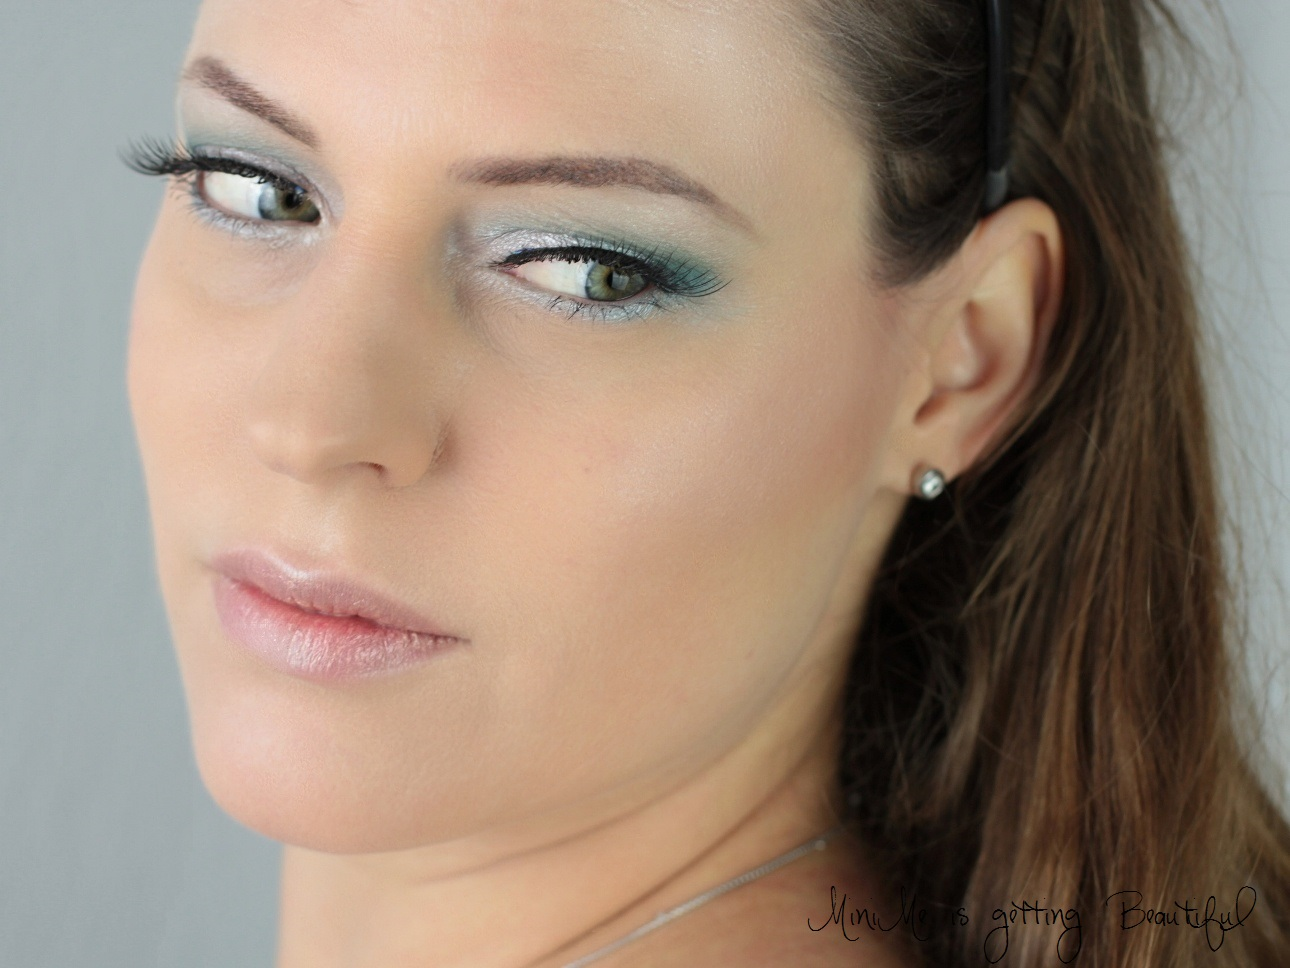 nachgeschminkt-icy-winter-make-up